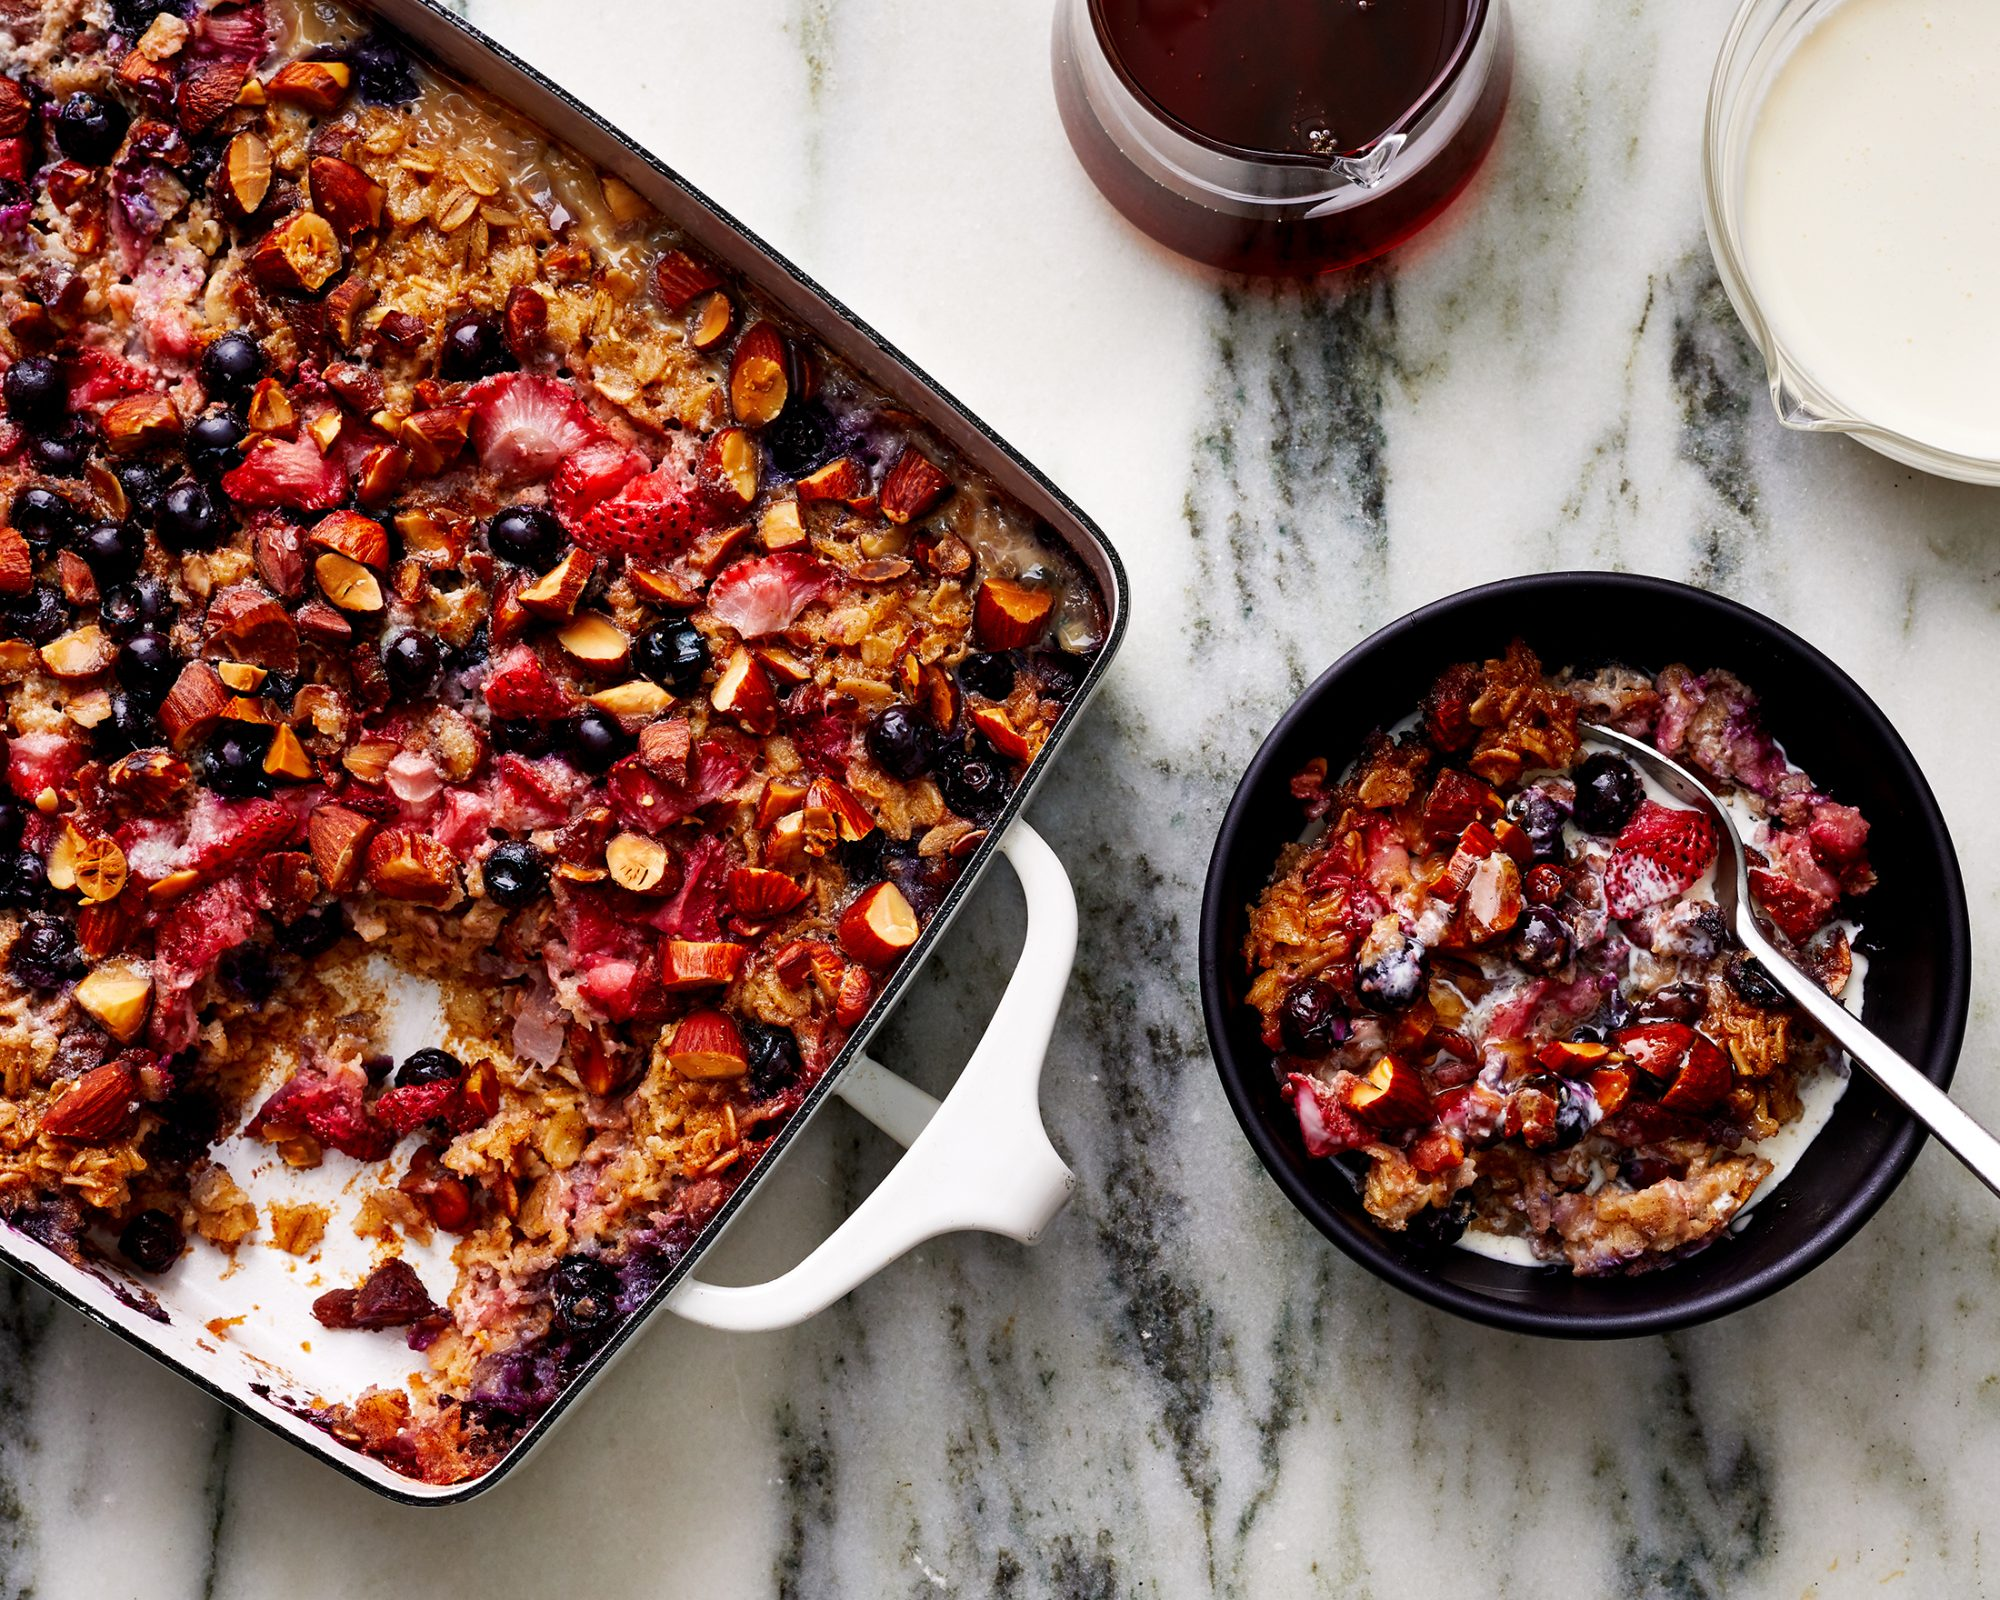 Best Baked Oatmeal